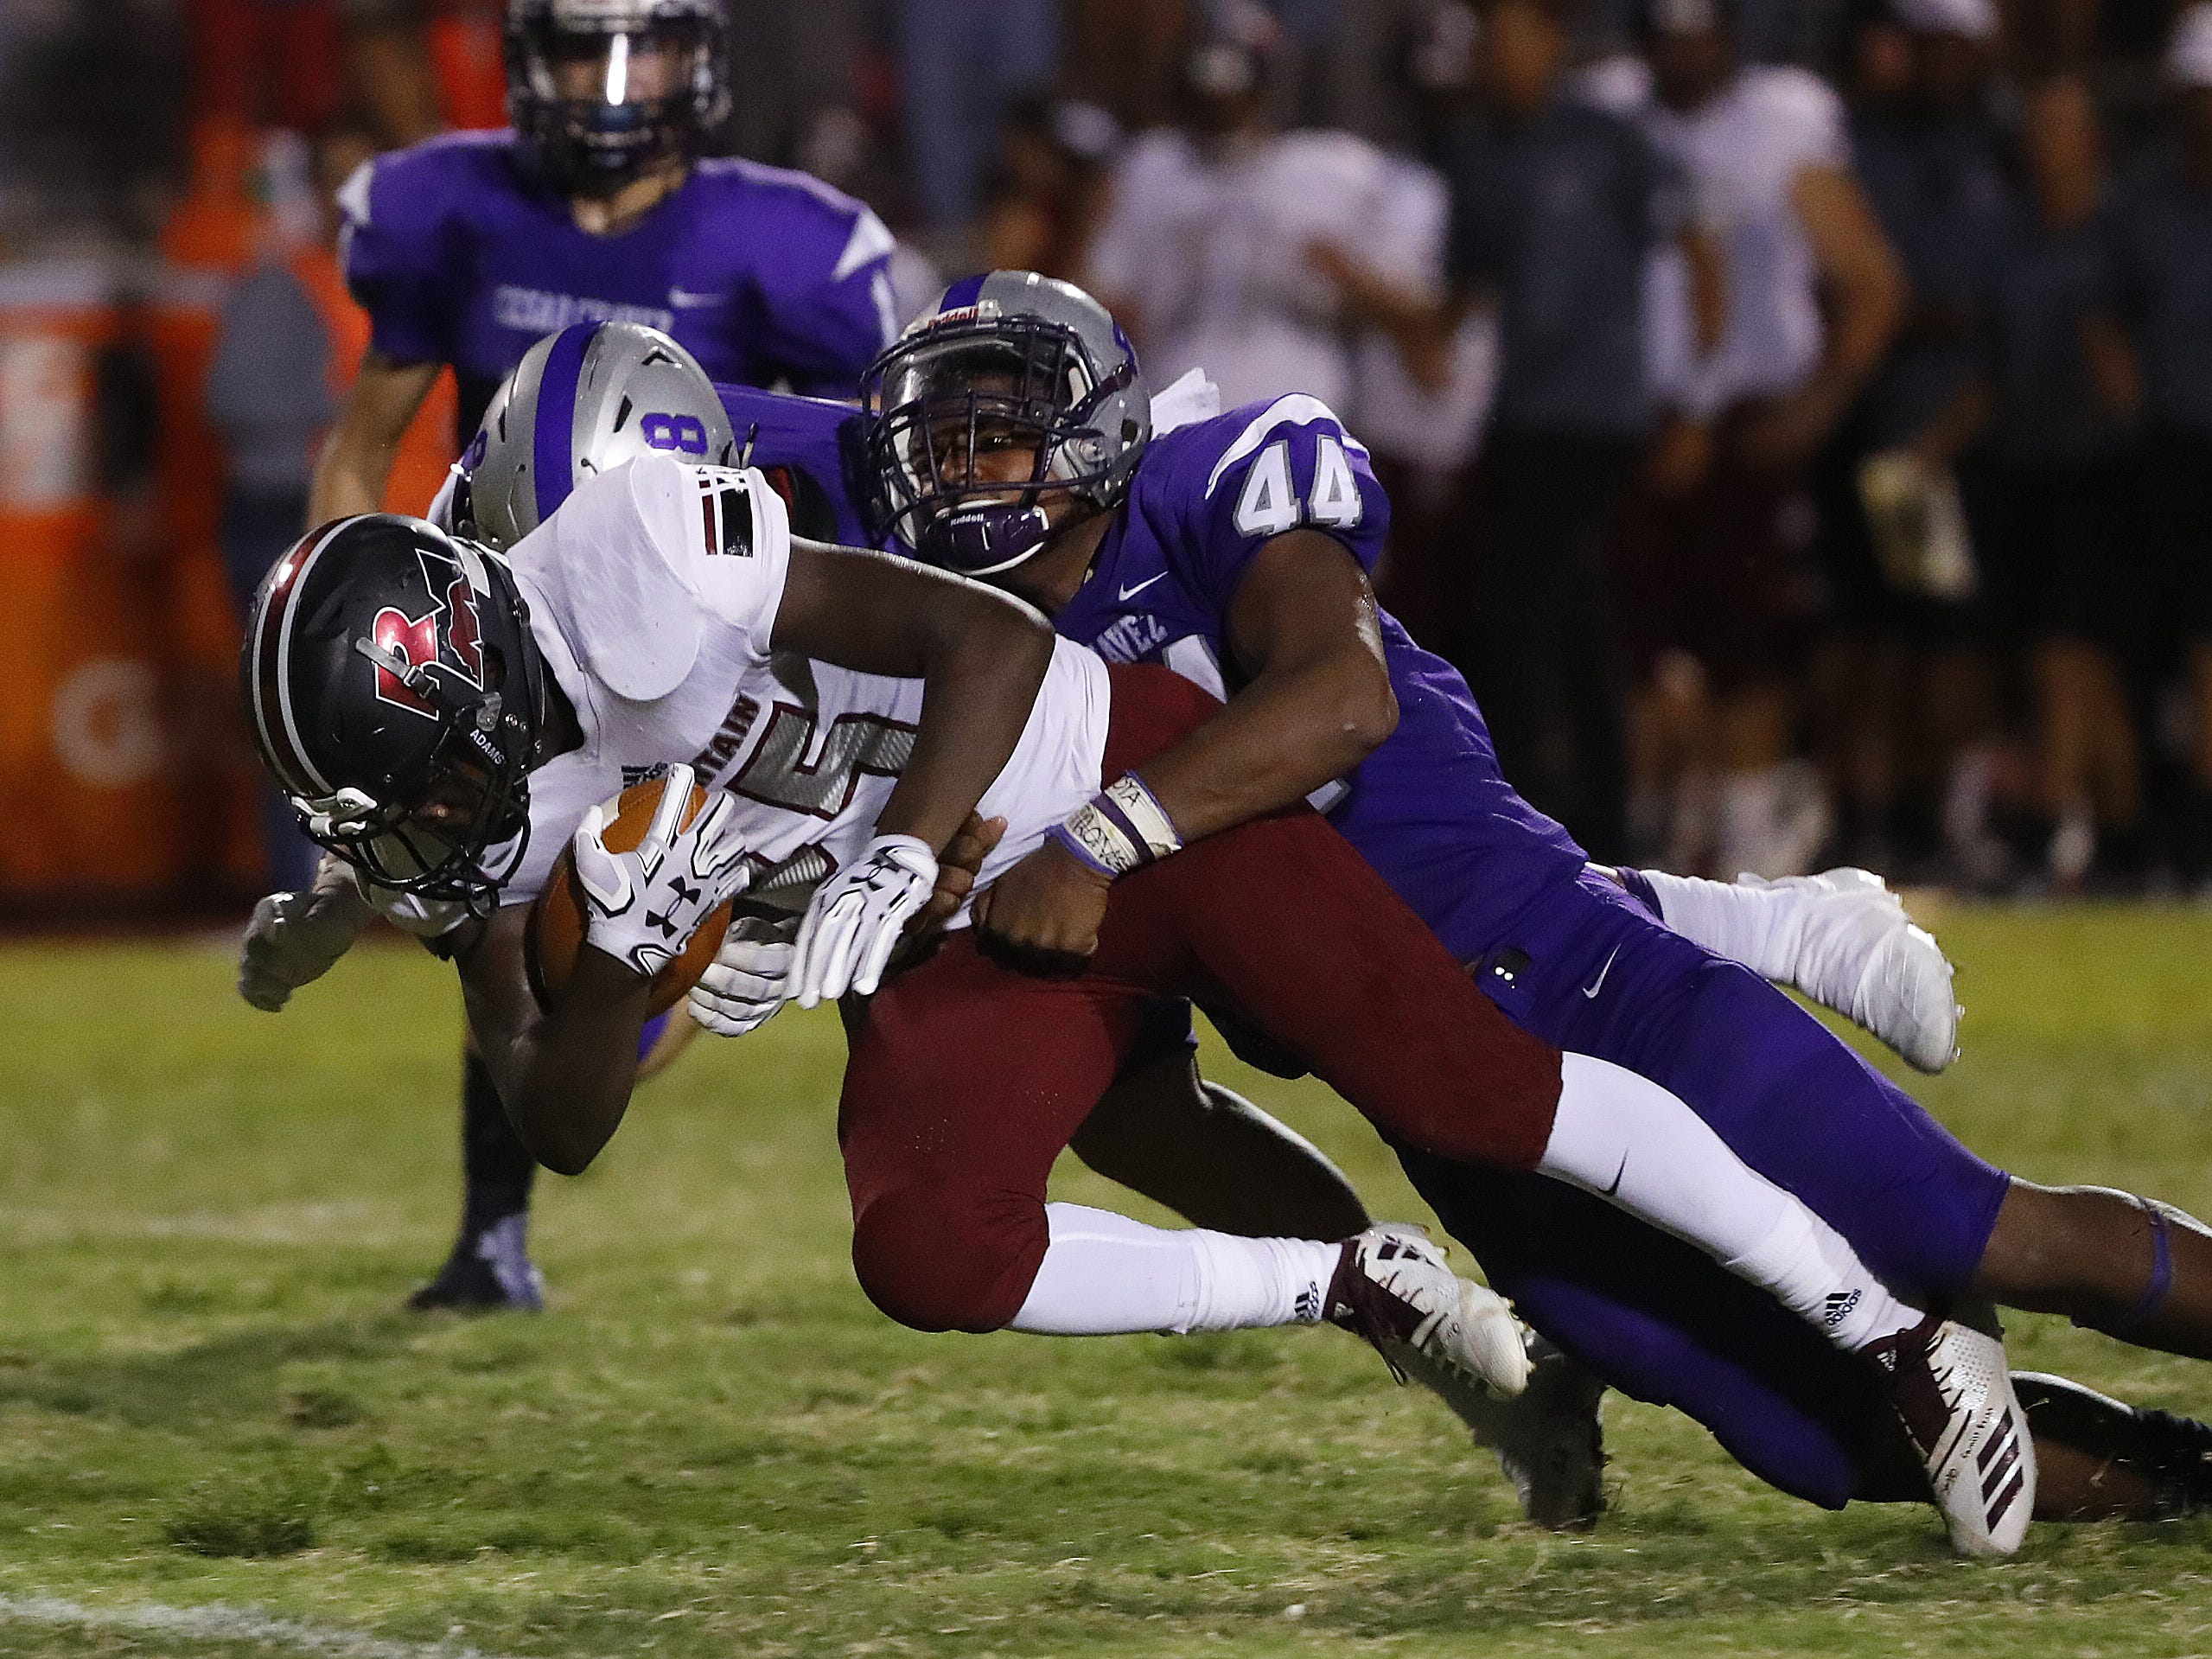 Cesar Chavez's Antwaun Winfield (44) tackles Red Mountain's Jarquell Garner (45) during a game at Cesar Chavez High School in Phoenix, Ariz. on Aug. 23, 2018. #azhsfb